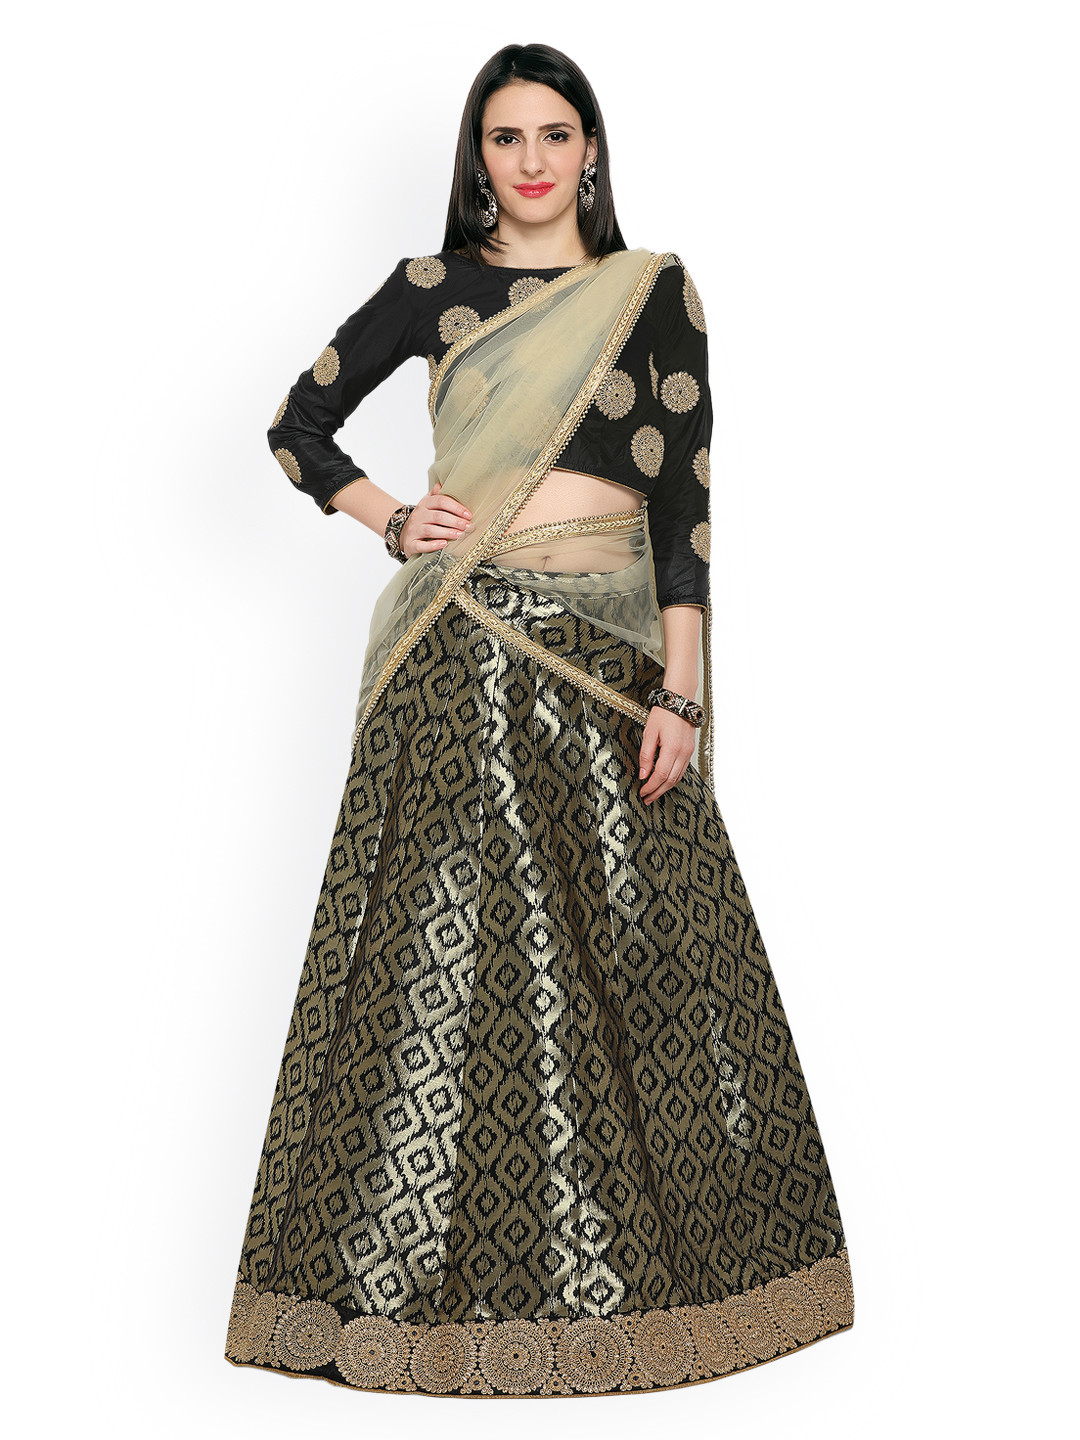 2 sangeet outfits for the bride